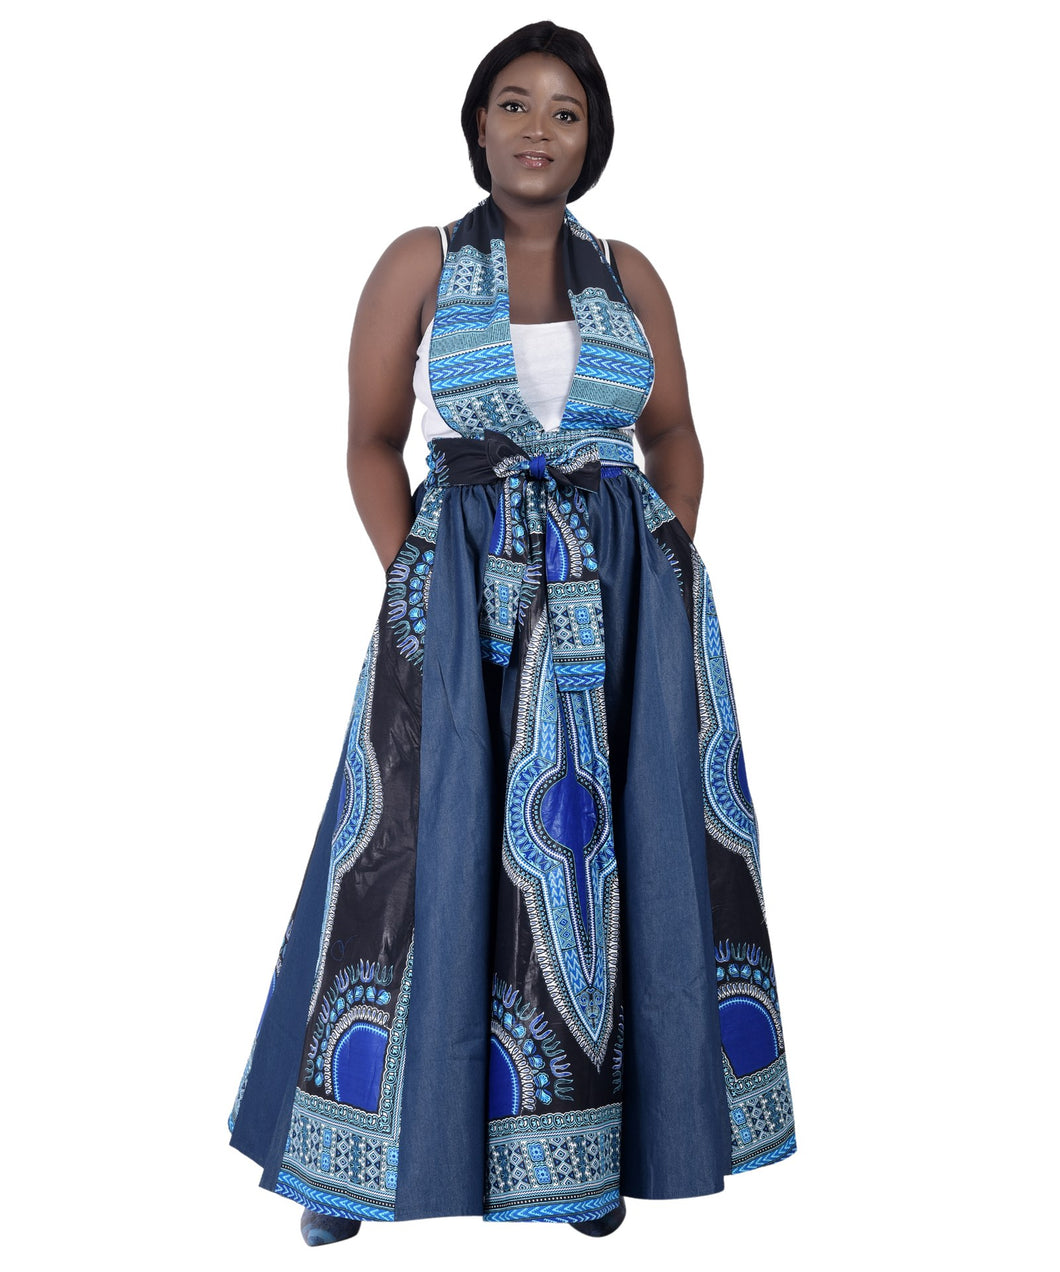 Denim + Ankara Print Long Maxi Skirt 19340